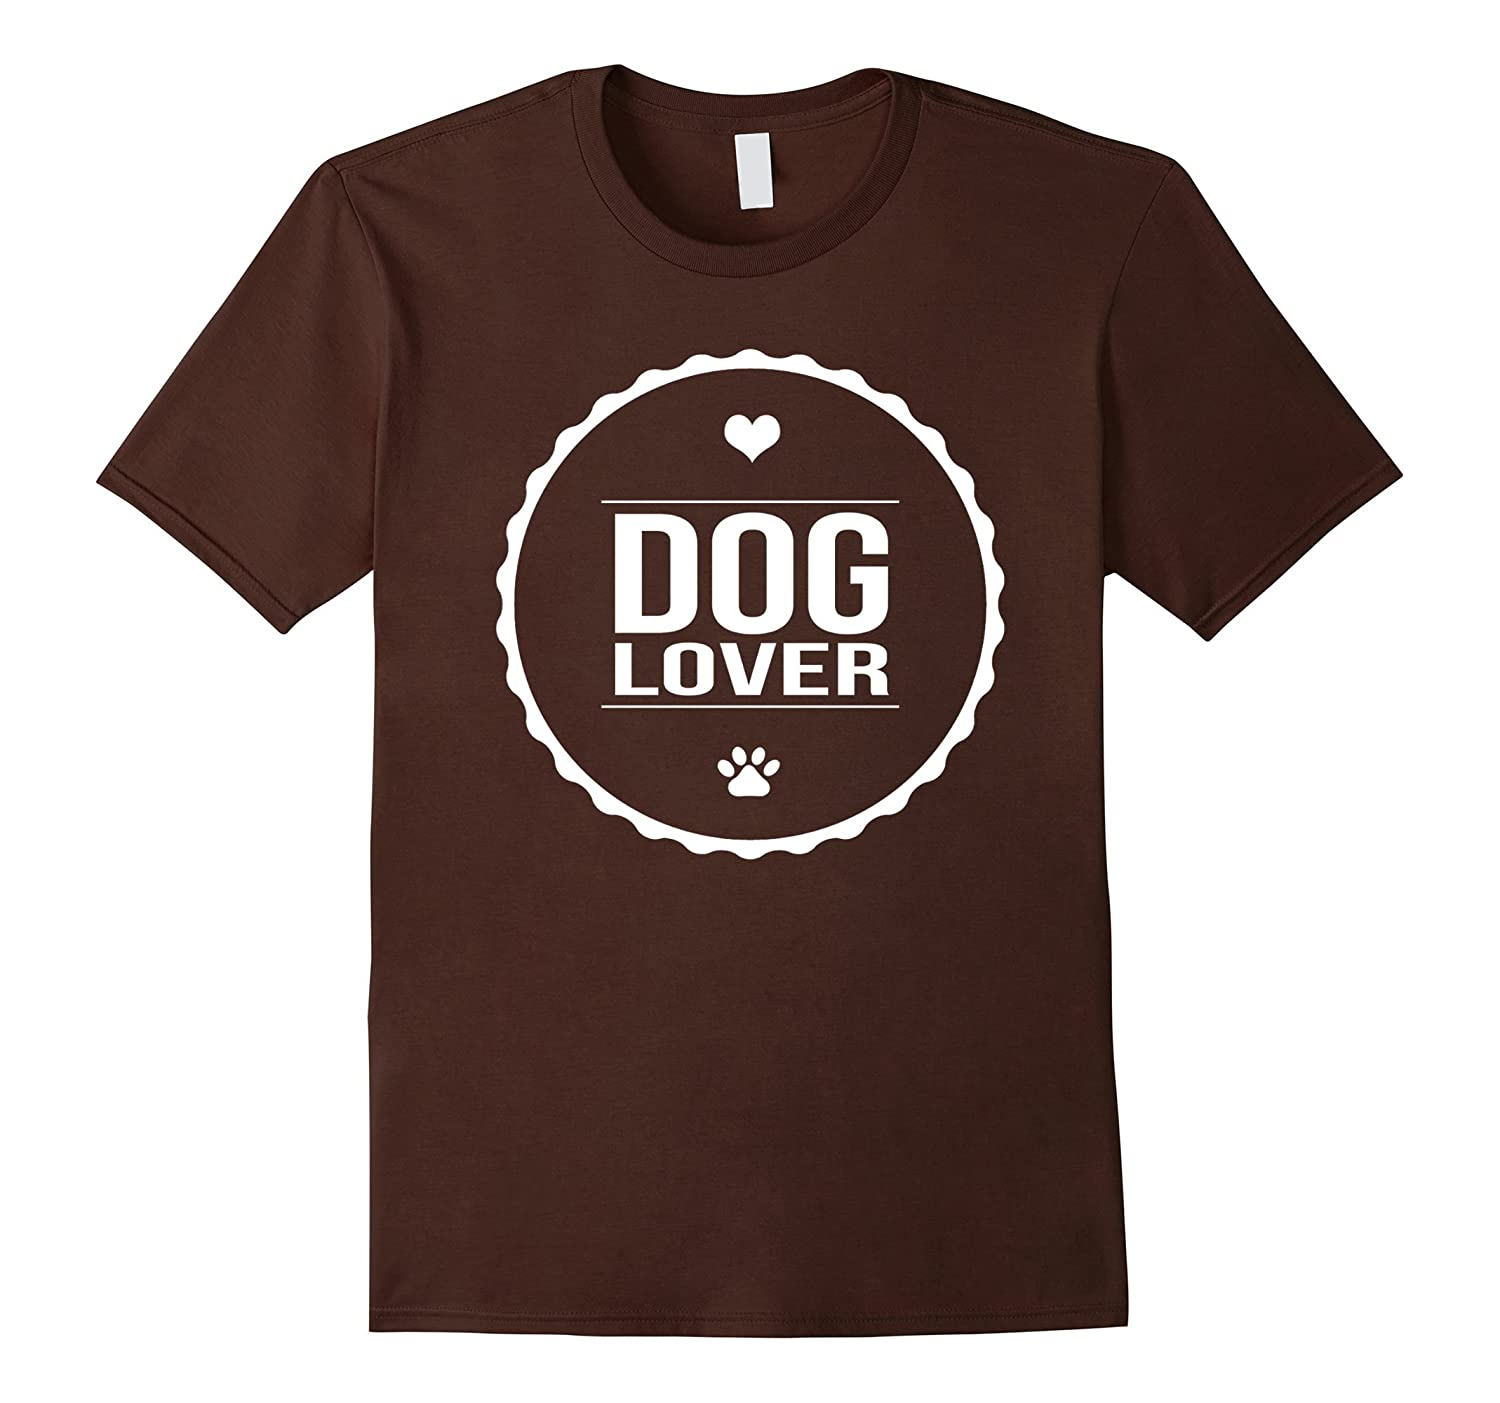 Aw Cute Dog Shirts Dog Lover Funny Fun Day at the Park Tee-BN